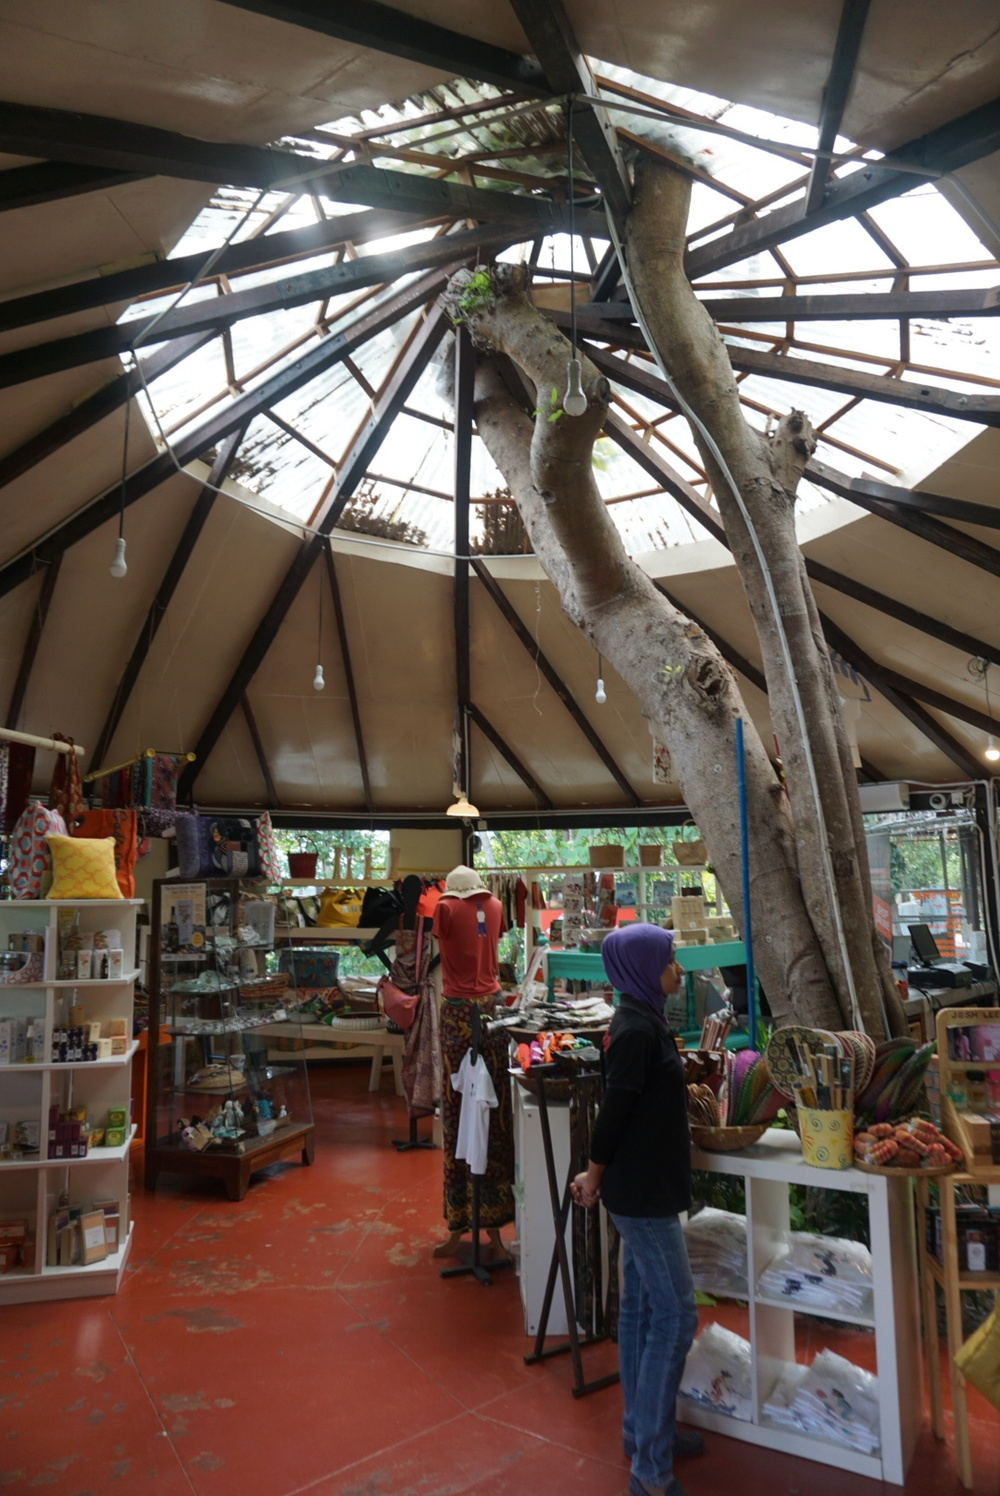 Love the way they built the gift shop around the tree!